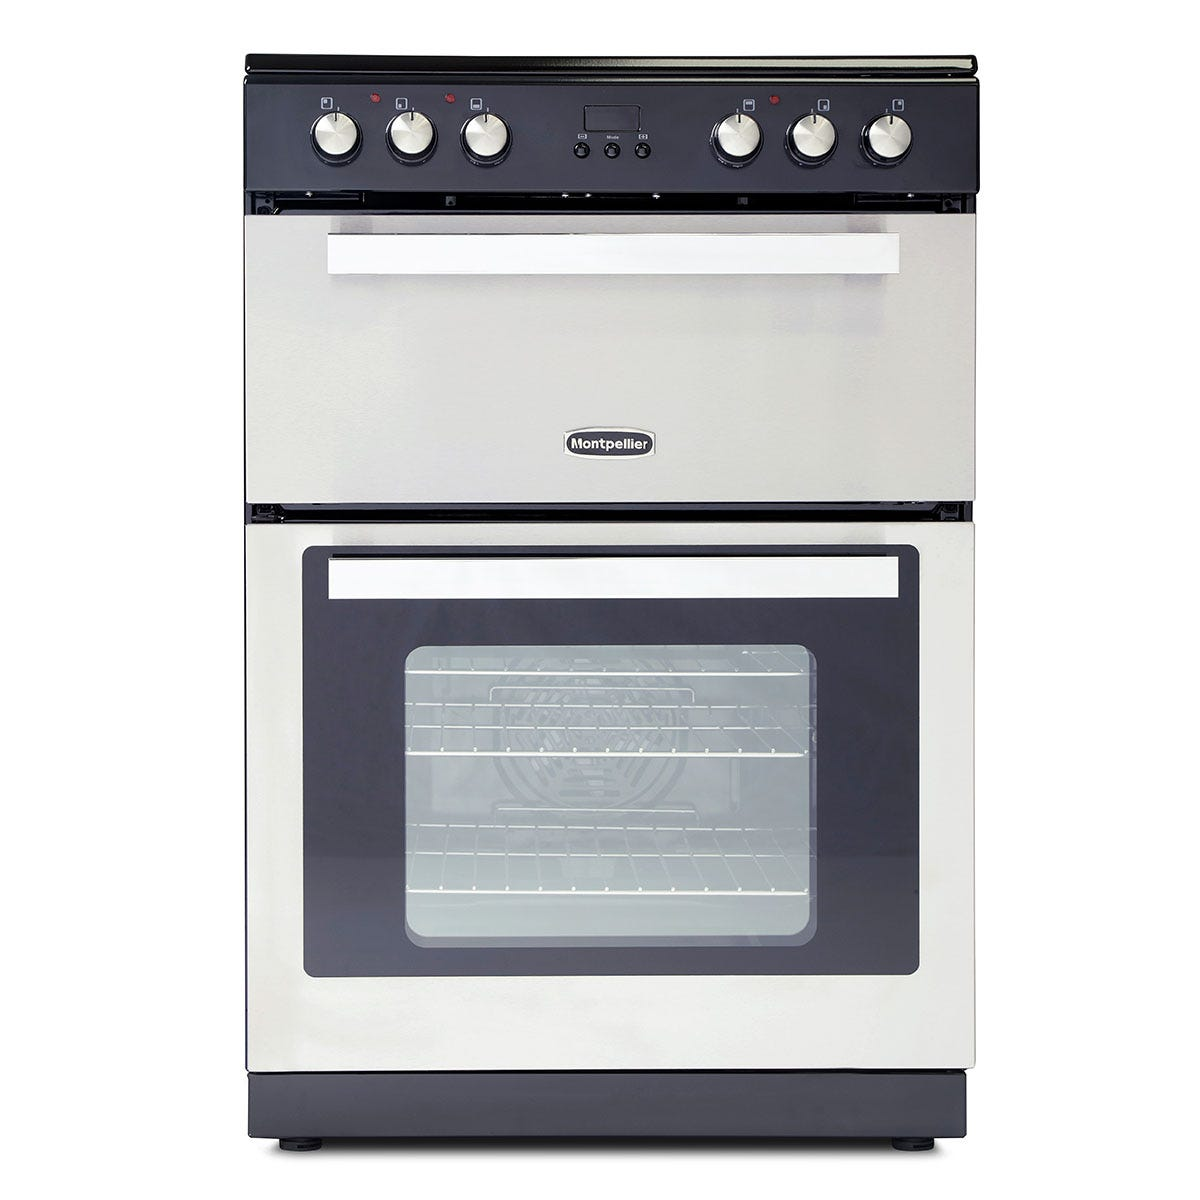 Montpellier RMC61CX 60cm Ceramic Mini Range Cooker with Double Oven - Stainless Steel